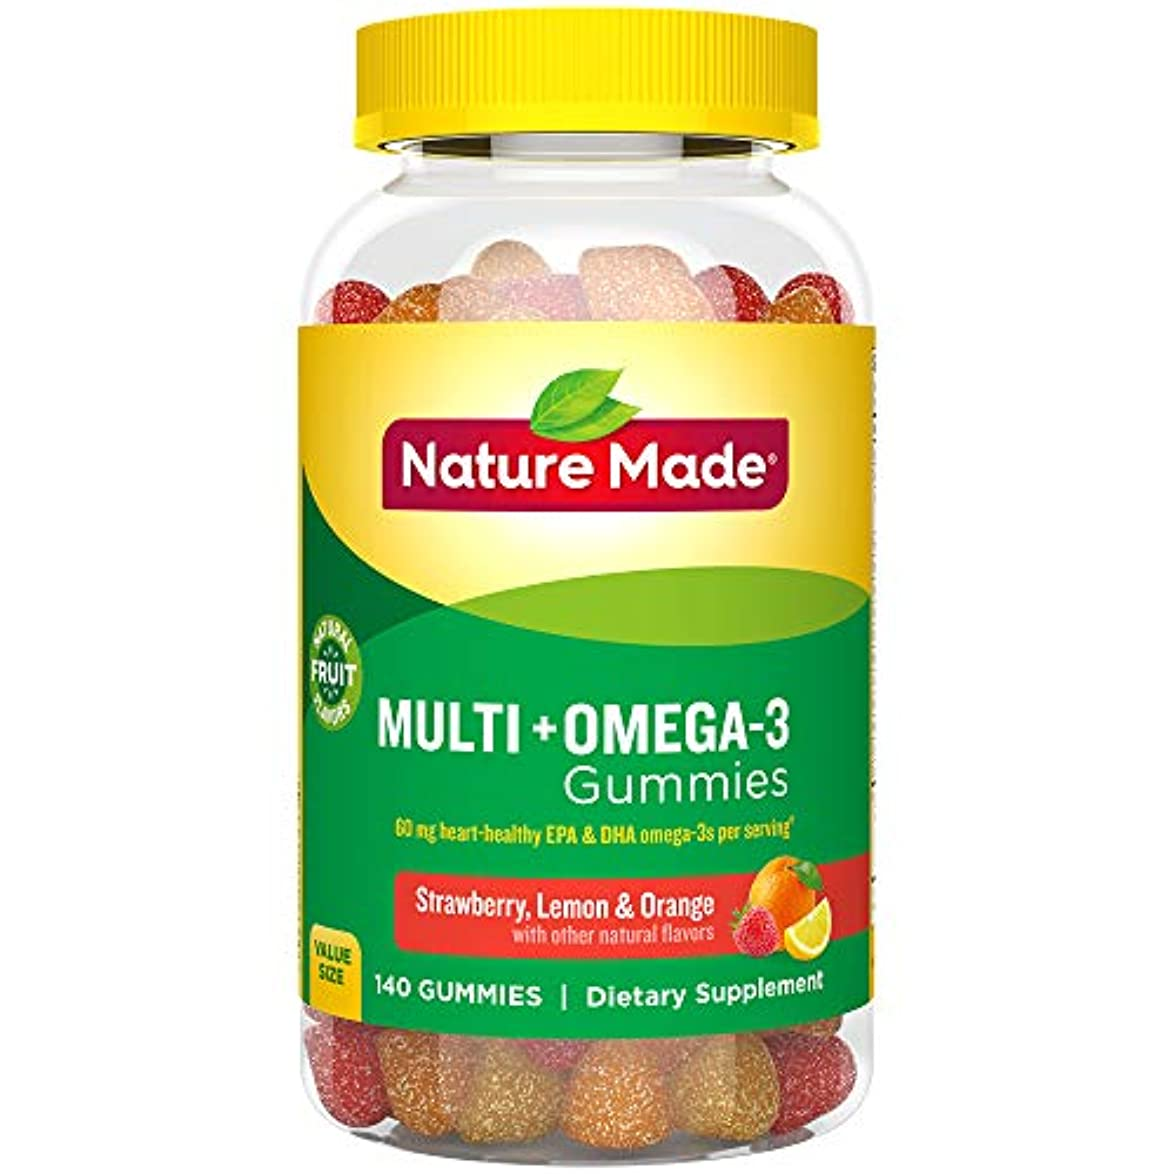 ぎこちないスペル証人Nature Made Multi + Omega-3 Adult Gummies (60 mg of DHA & EPA per serving),140粒